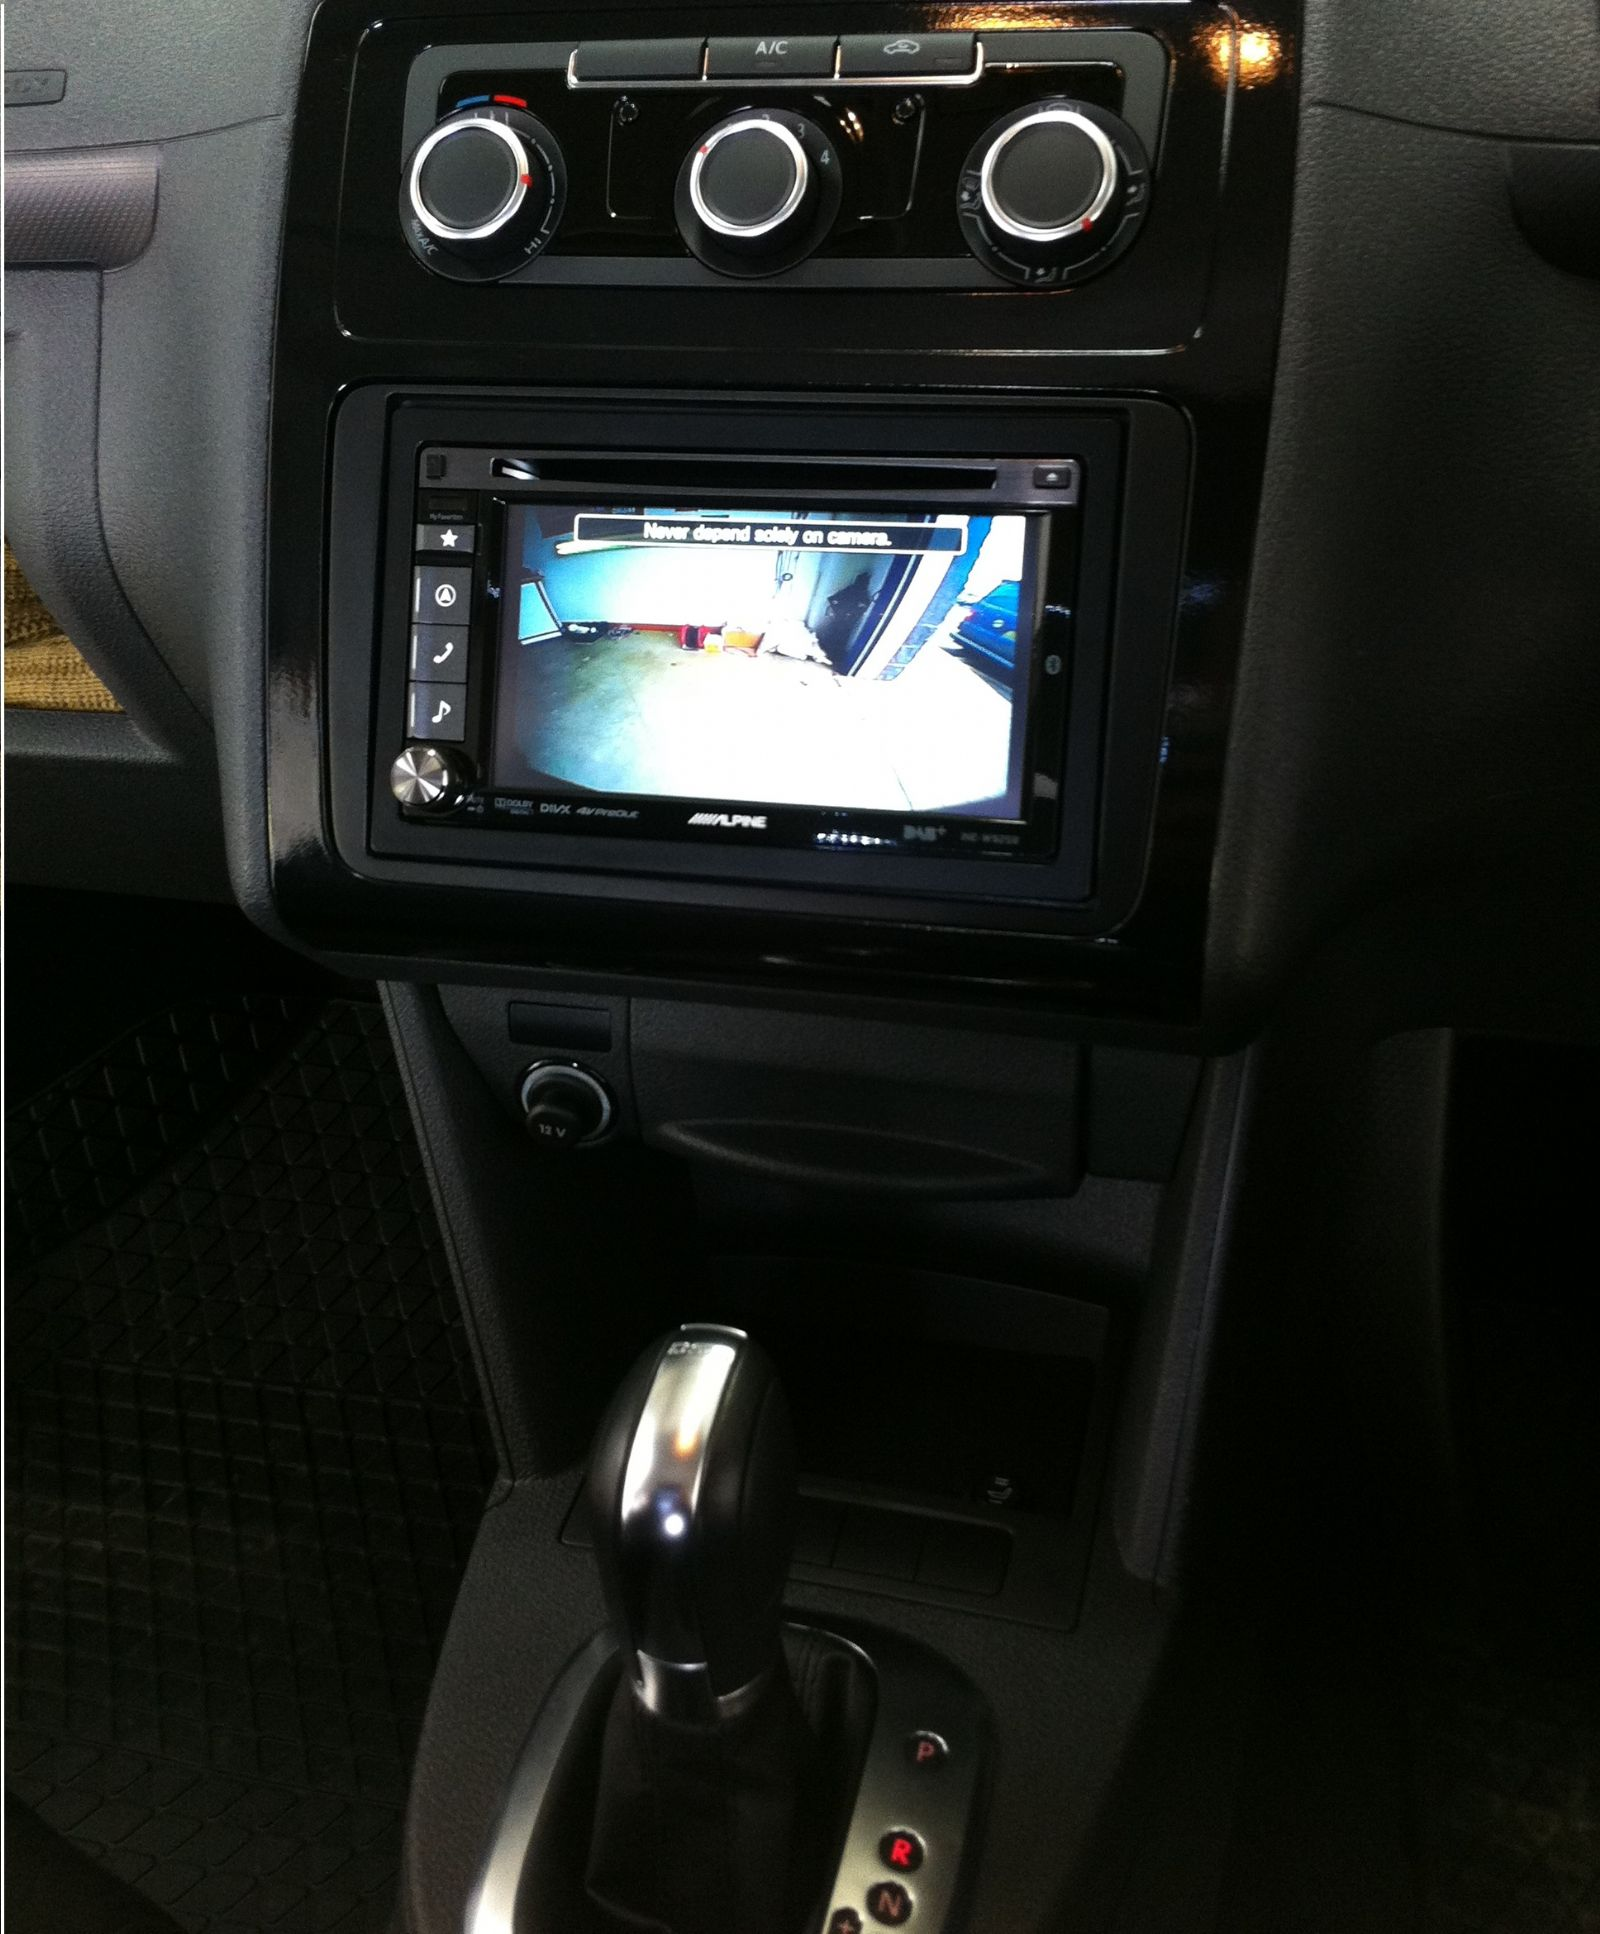 vw_caddy_alpine_ine-w925r_reversing_camera.JPG